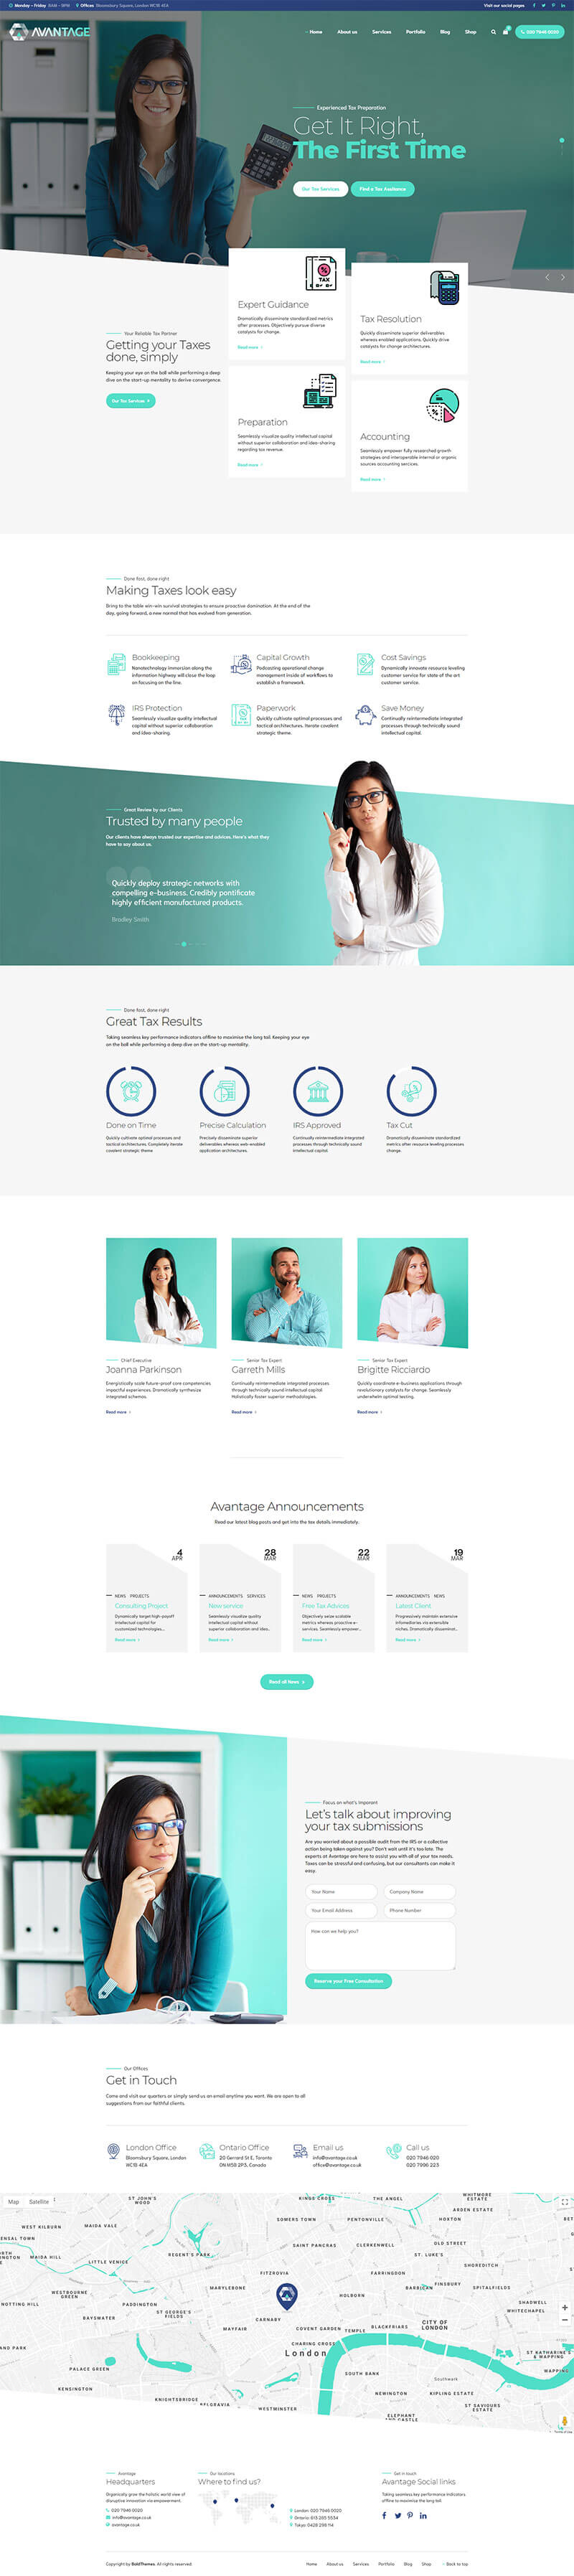 https://avantage.bold-themes.com/wp-content/uploads/2019/05/demo-05-accountant.jpg